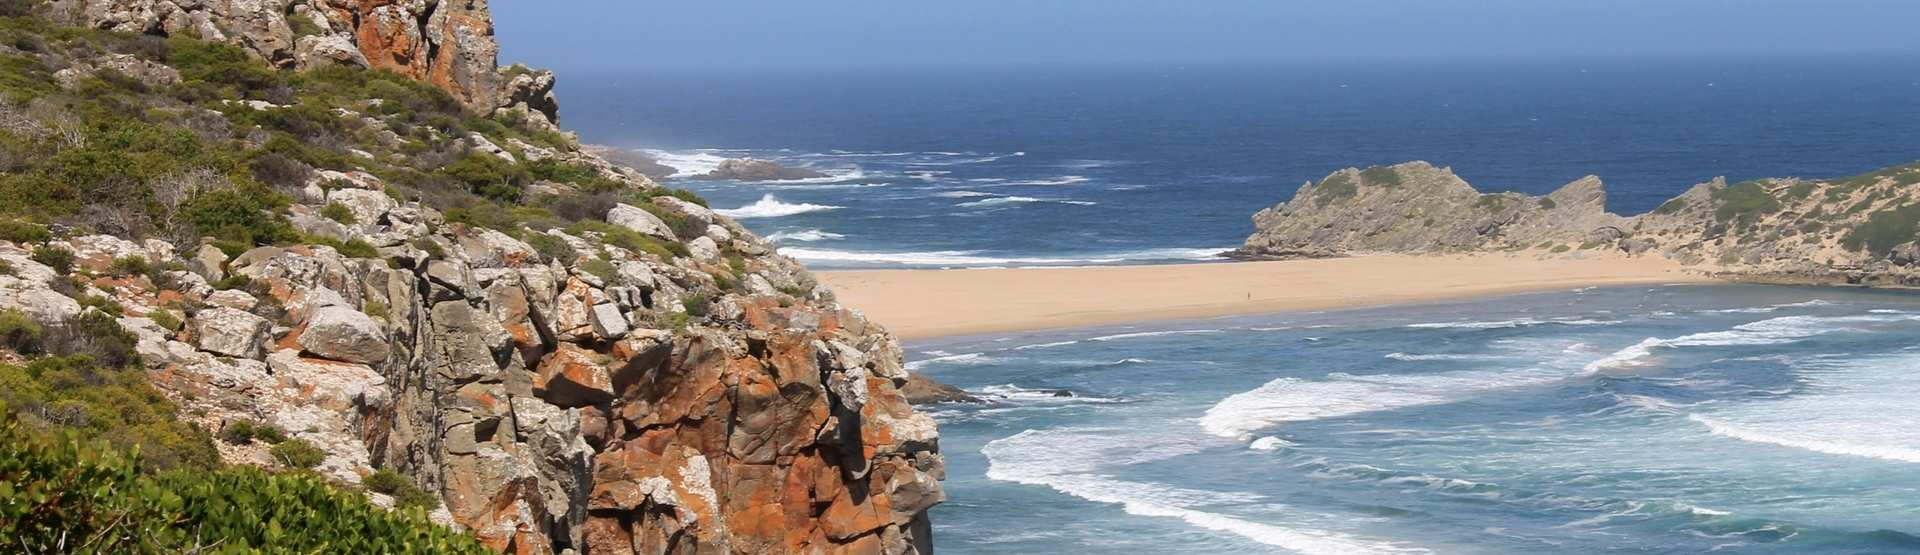 Marvellous Garden Route  Plettenberg Bay  The Robberg Beach Collection  With Hot The Robberg Beach Lodge Robberg Peninsula Plettenberg Bay Home  The  Garden Route With Amusing Bronze Garden Statues Also Sports Direct Covent Garden In Addition Garden Design Hull And Bonsai Garden As Well As Teak Garden Loungers Additionally Best Garden Shed From Therobbergcoza With   Hot Garden Route  Plettenberg Bay  The Robberg Beach Collection  With Amusing The Robberg Beach Lodge Robberg Peninsula Plettenberg Bay Home  The  Garden Route And Marvellous Bronze Garden Statues Also Sports Direct Covent Garden In Addition Garden Design Hull From Therobbergcoza